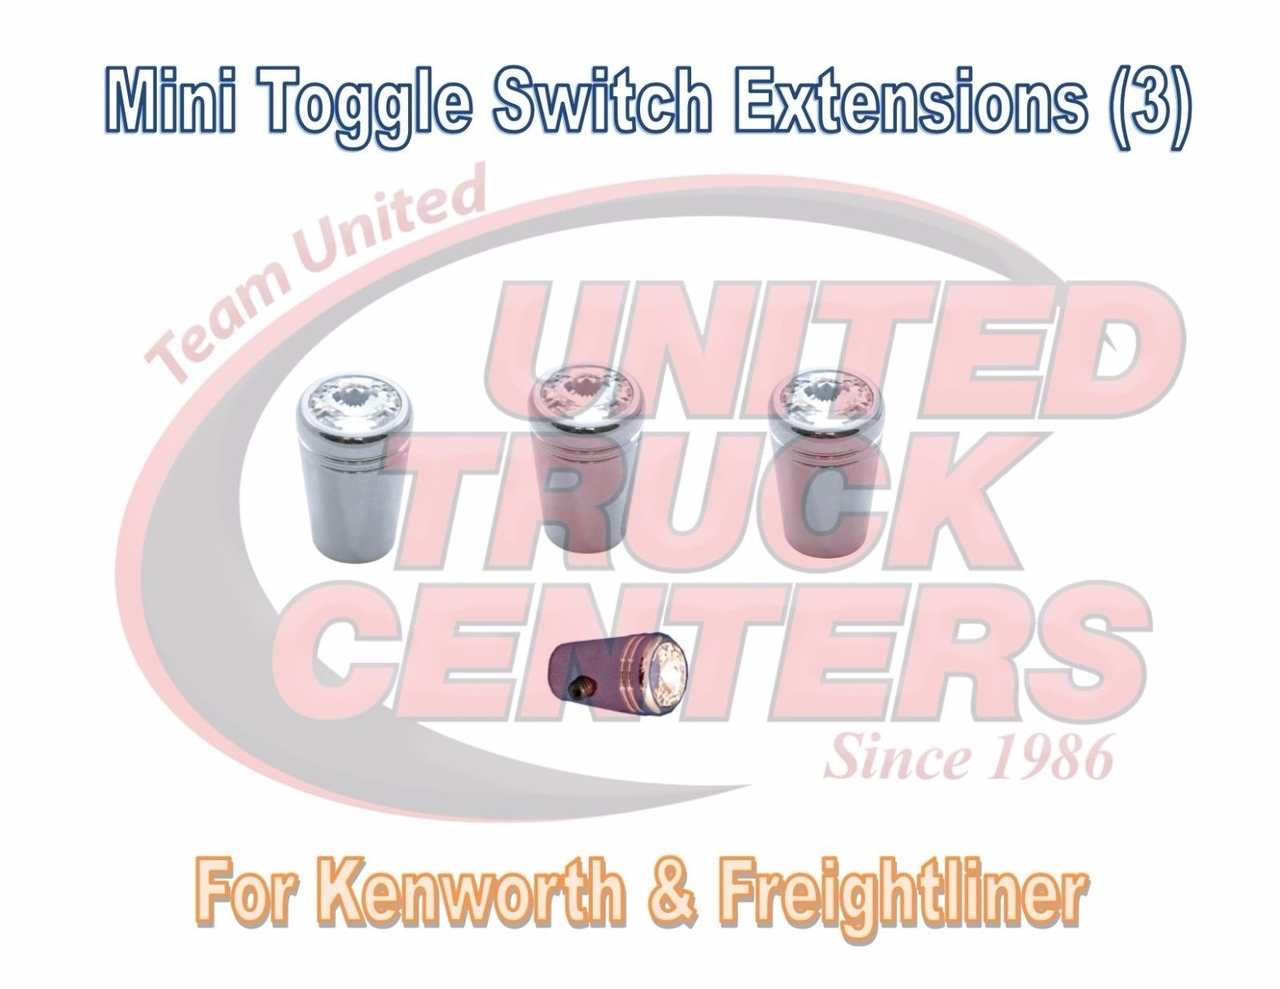 Toggle Switch extensions(3) Mini CLEAR Jewel Chrome - Freightliner KW -  Pointed